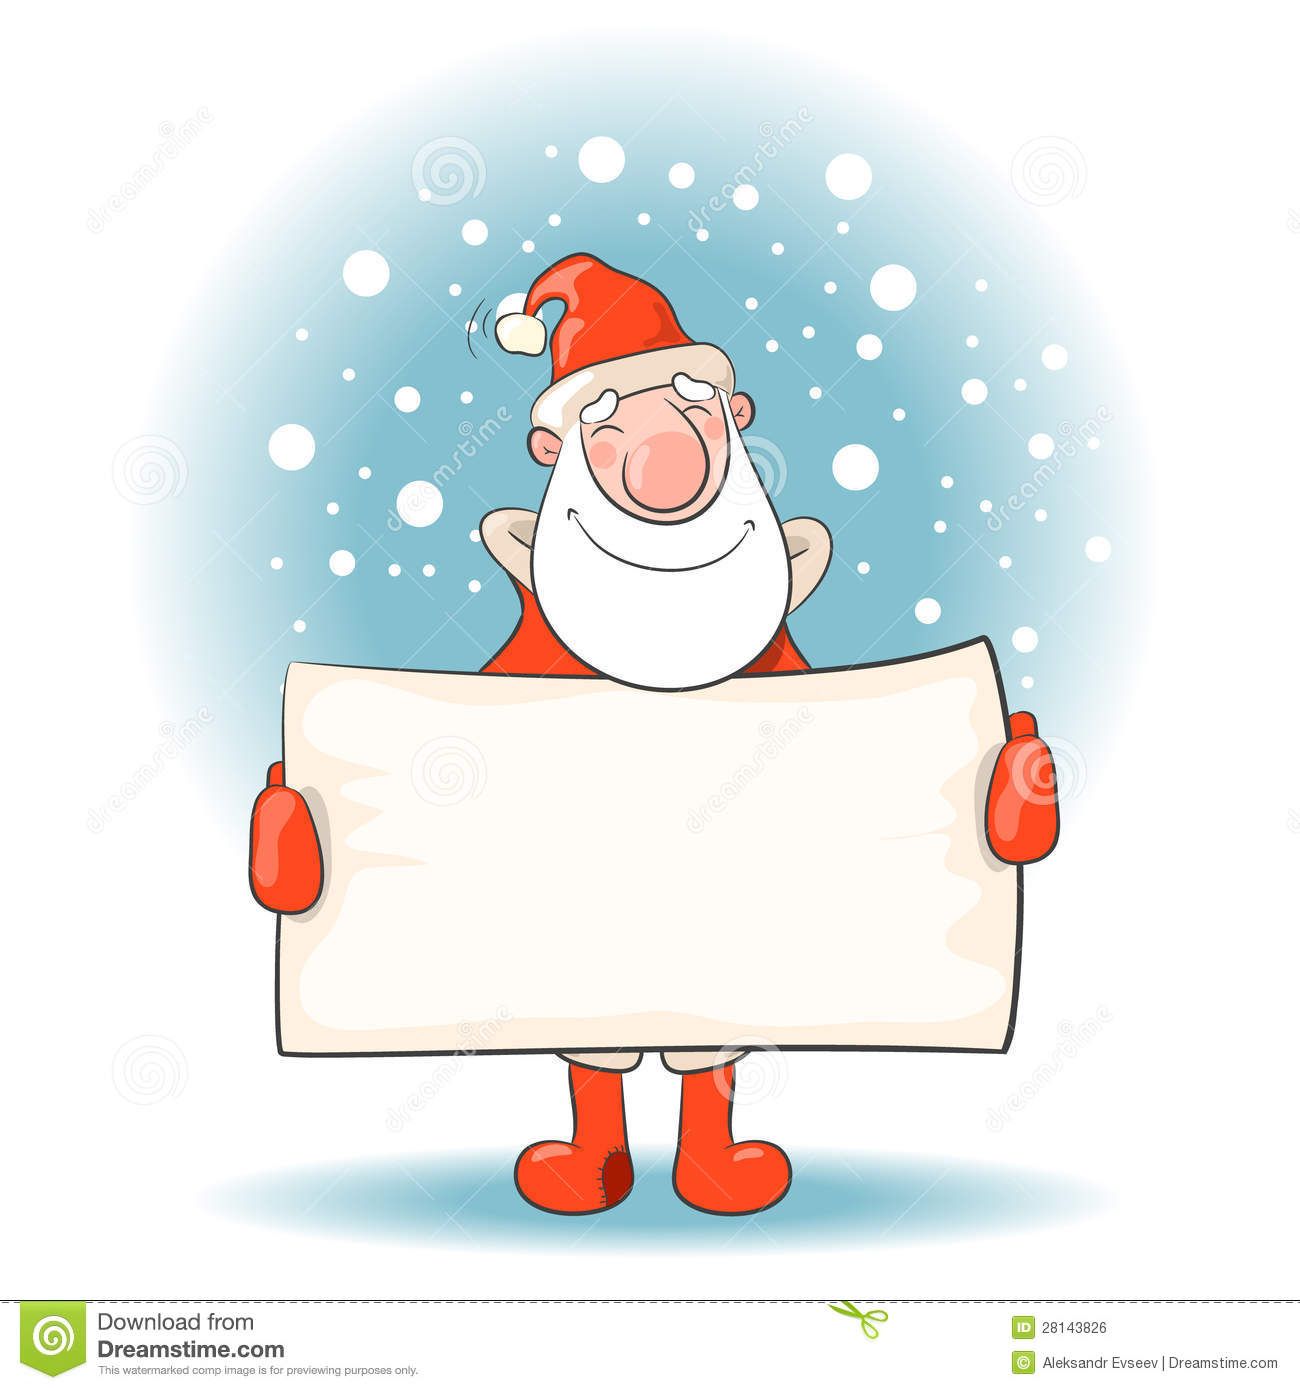 Santa claus with a banner royalty free stock image